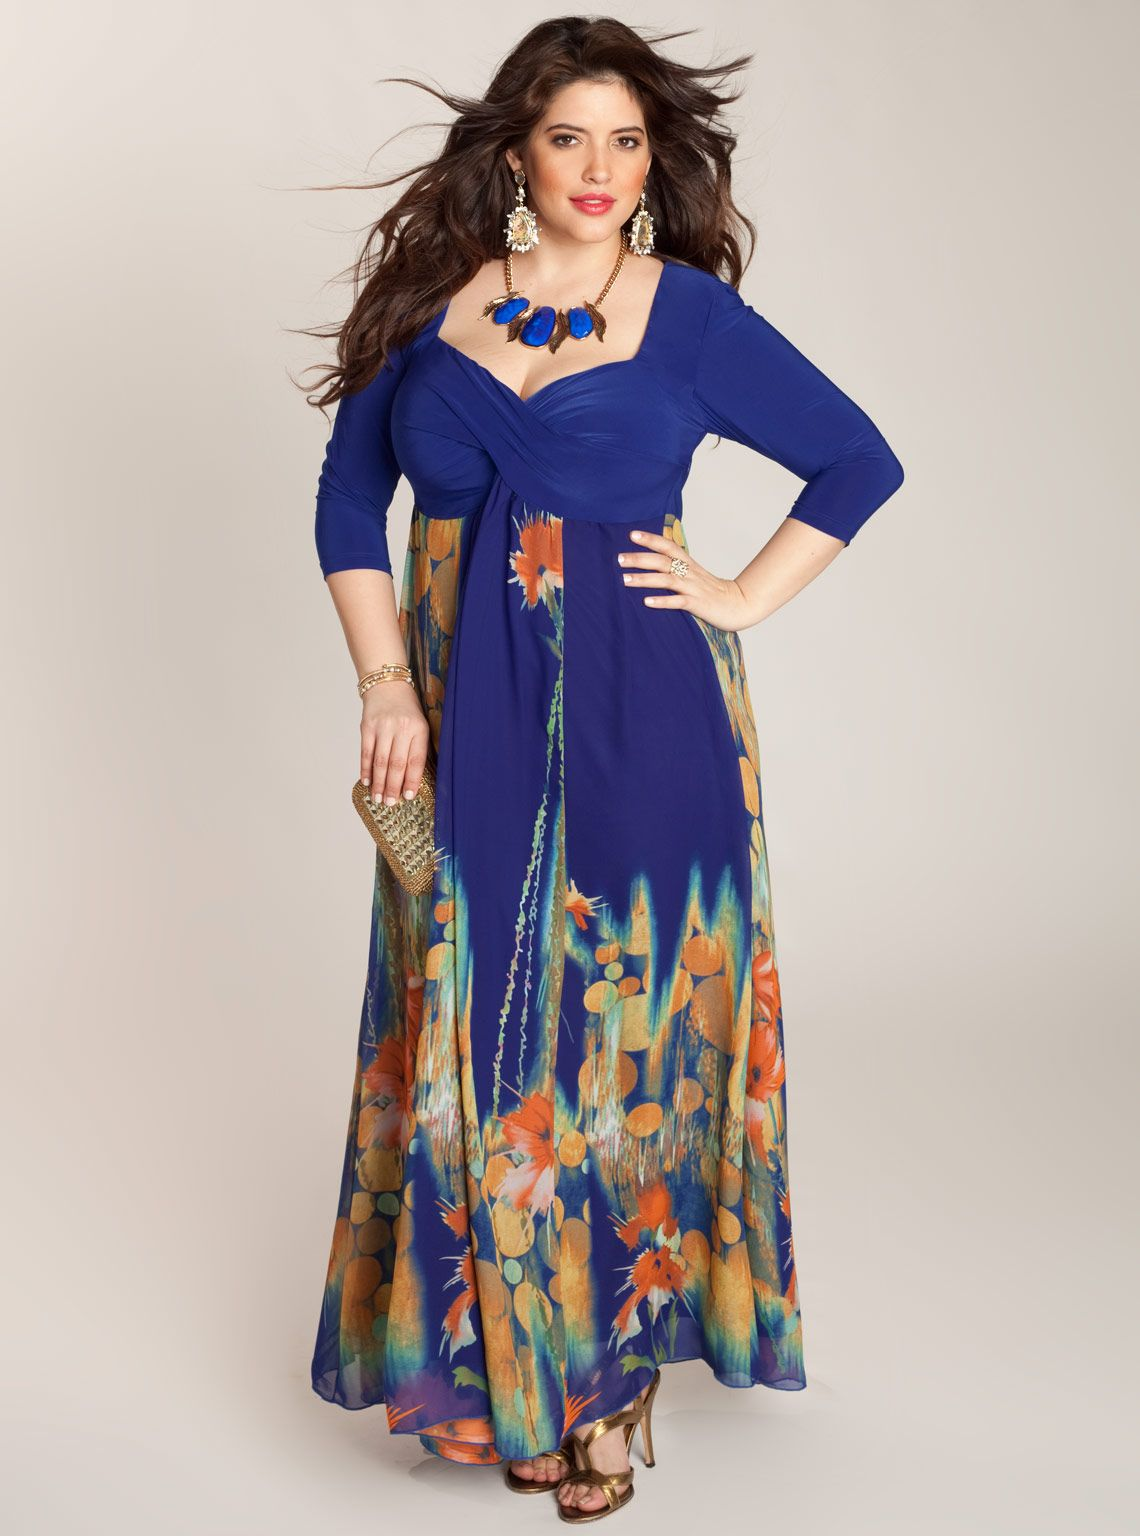 78  images about Plus Size Dresses for Women 2014 on Pinterest ...